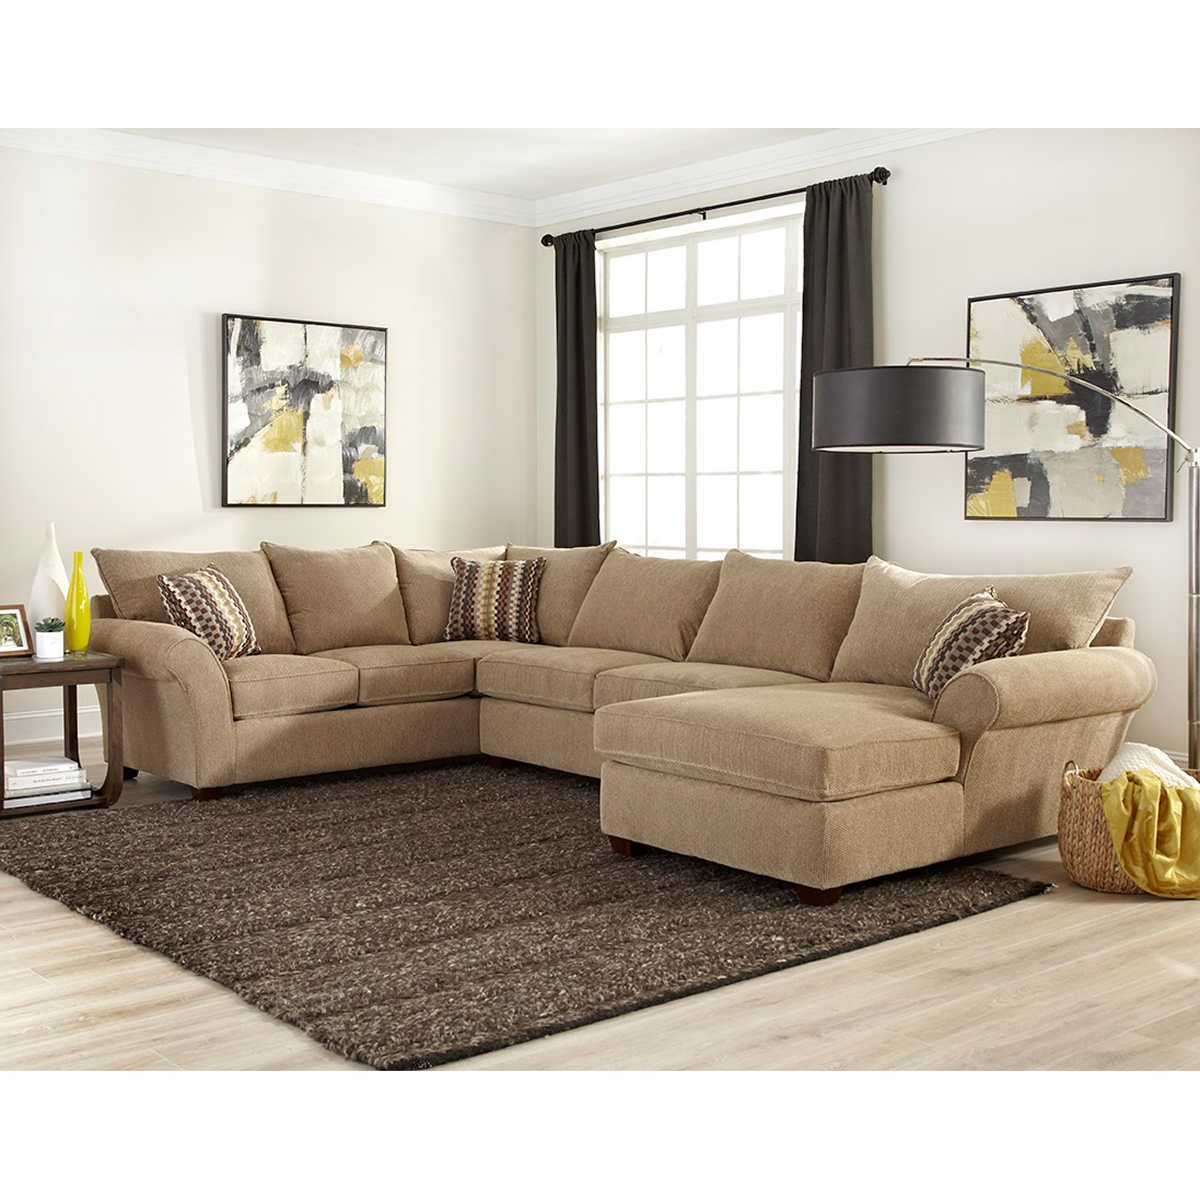 Delightful Cabot Fabric Sectional